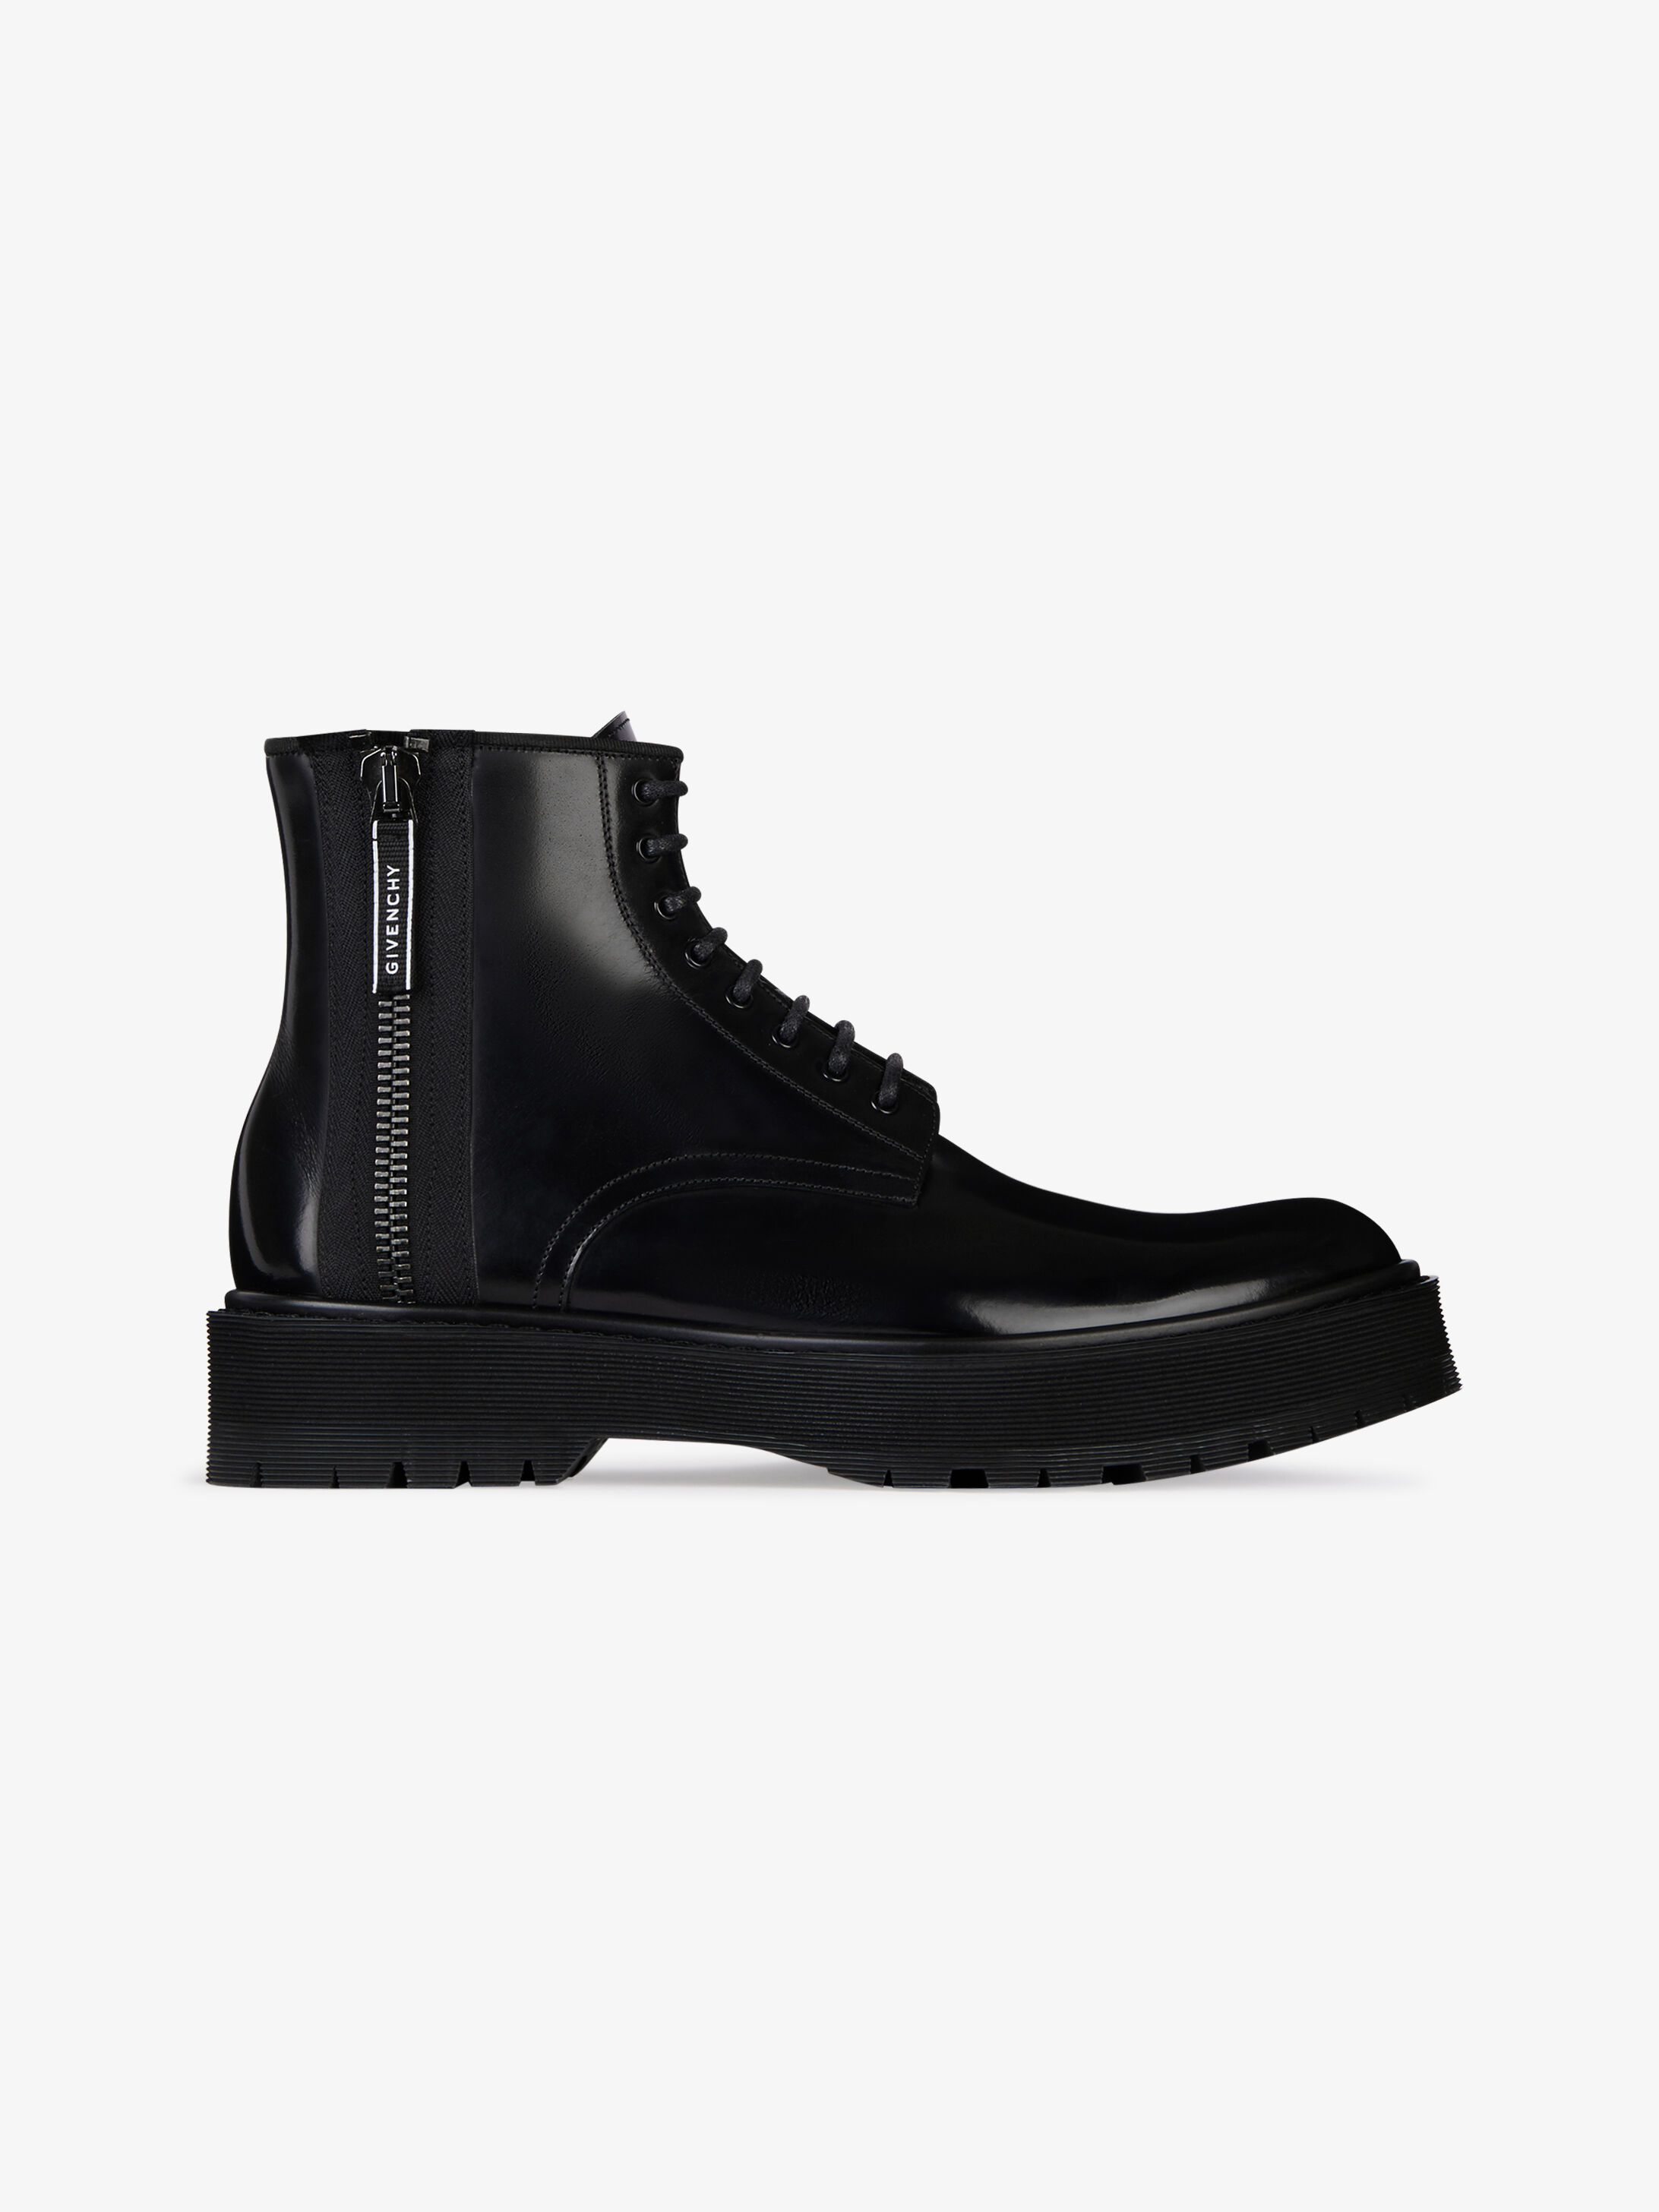 35ad26d3460 Men s Boots and Derbies collection by Givenchy.